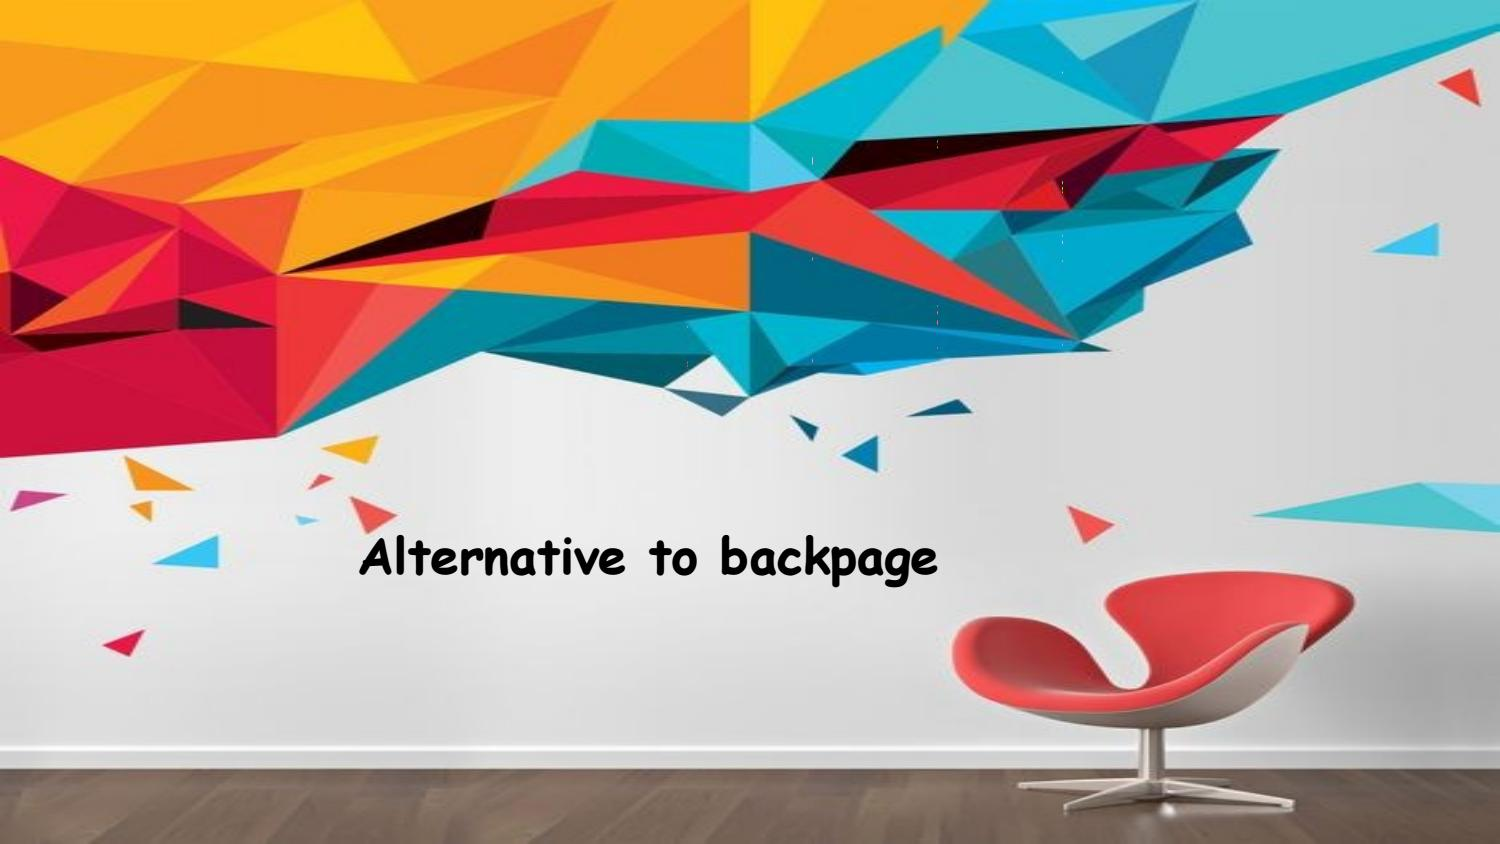 Site Similar To Backpage Alternative To Backpage Sites Like Backpage Backpage Charlotte By Three Gigglers Ssa Issuu